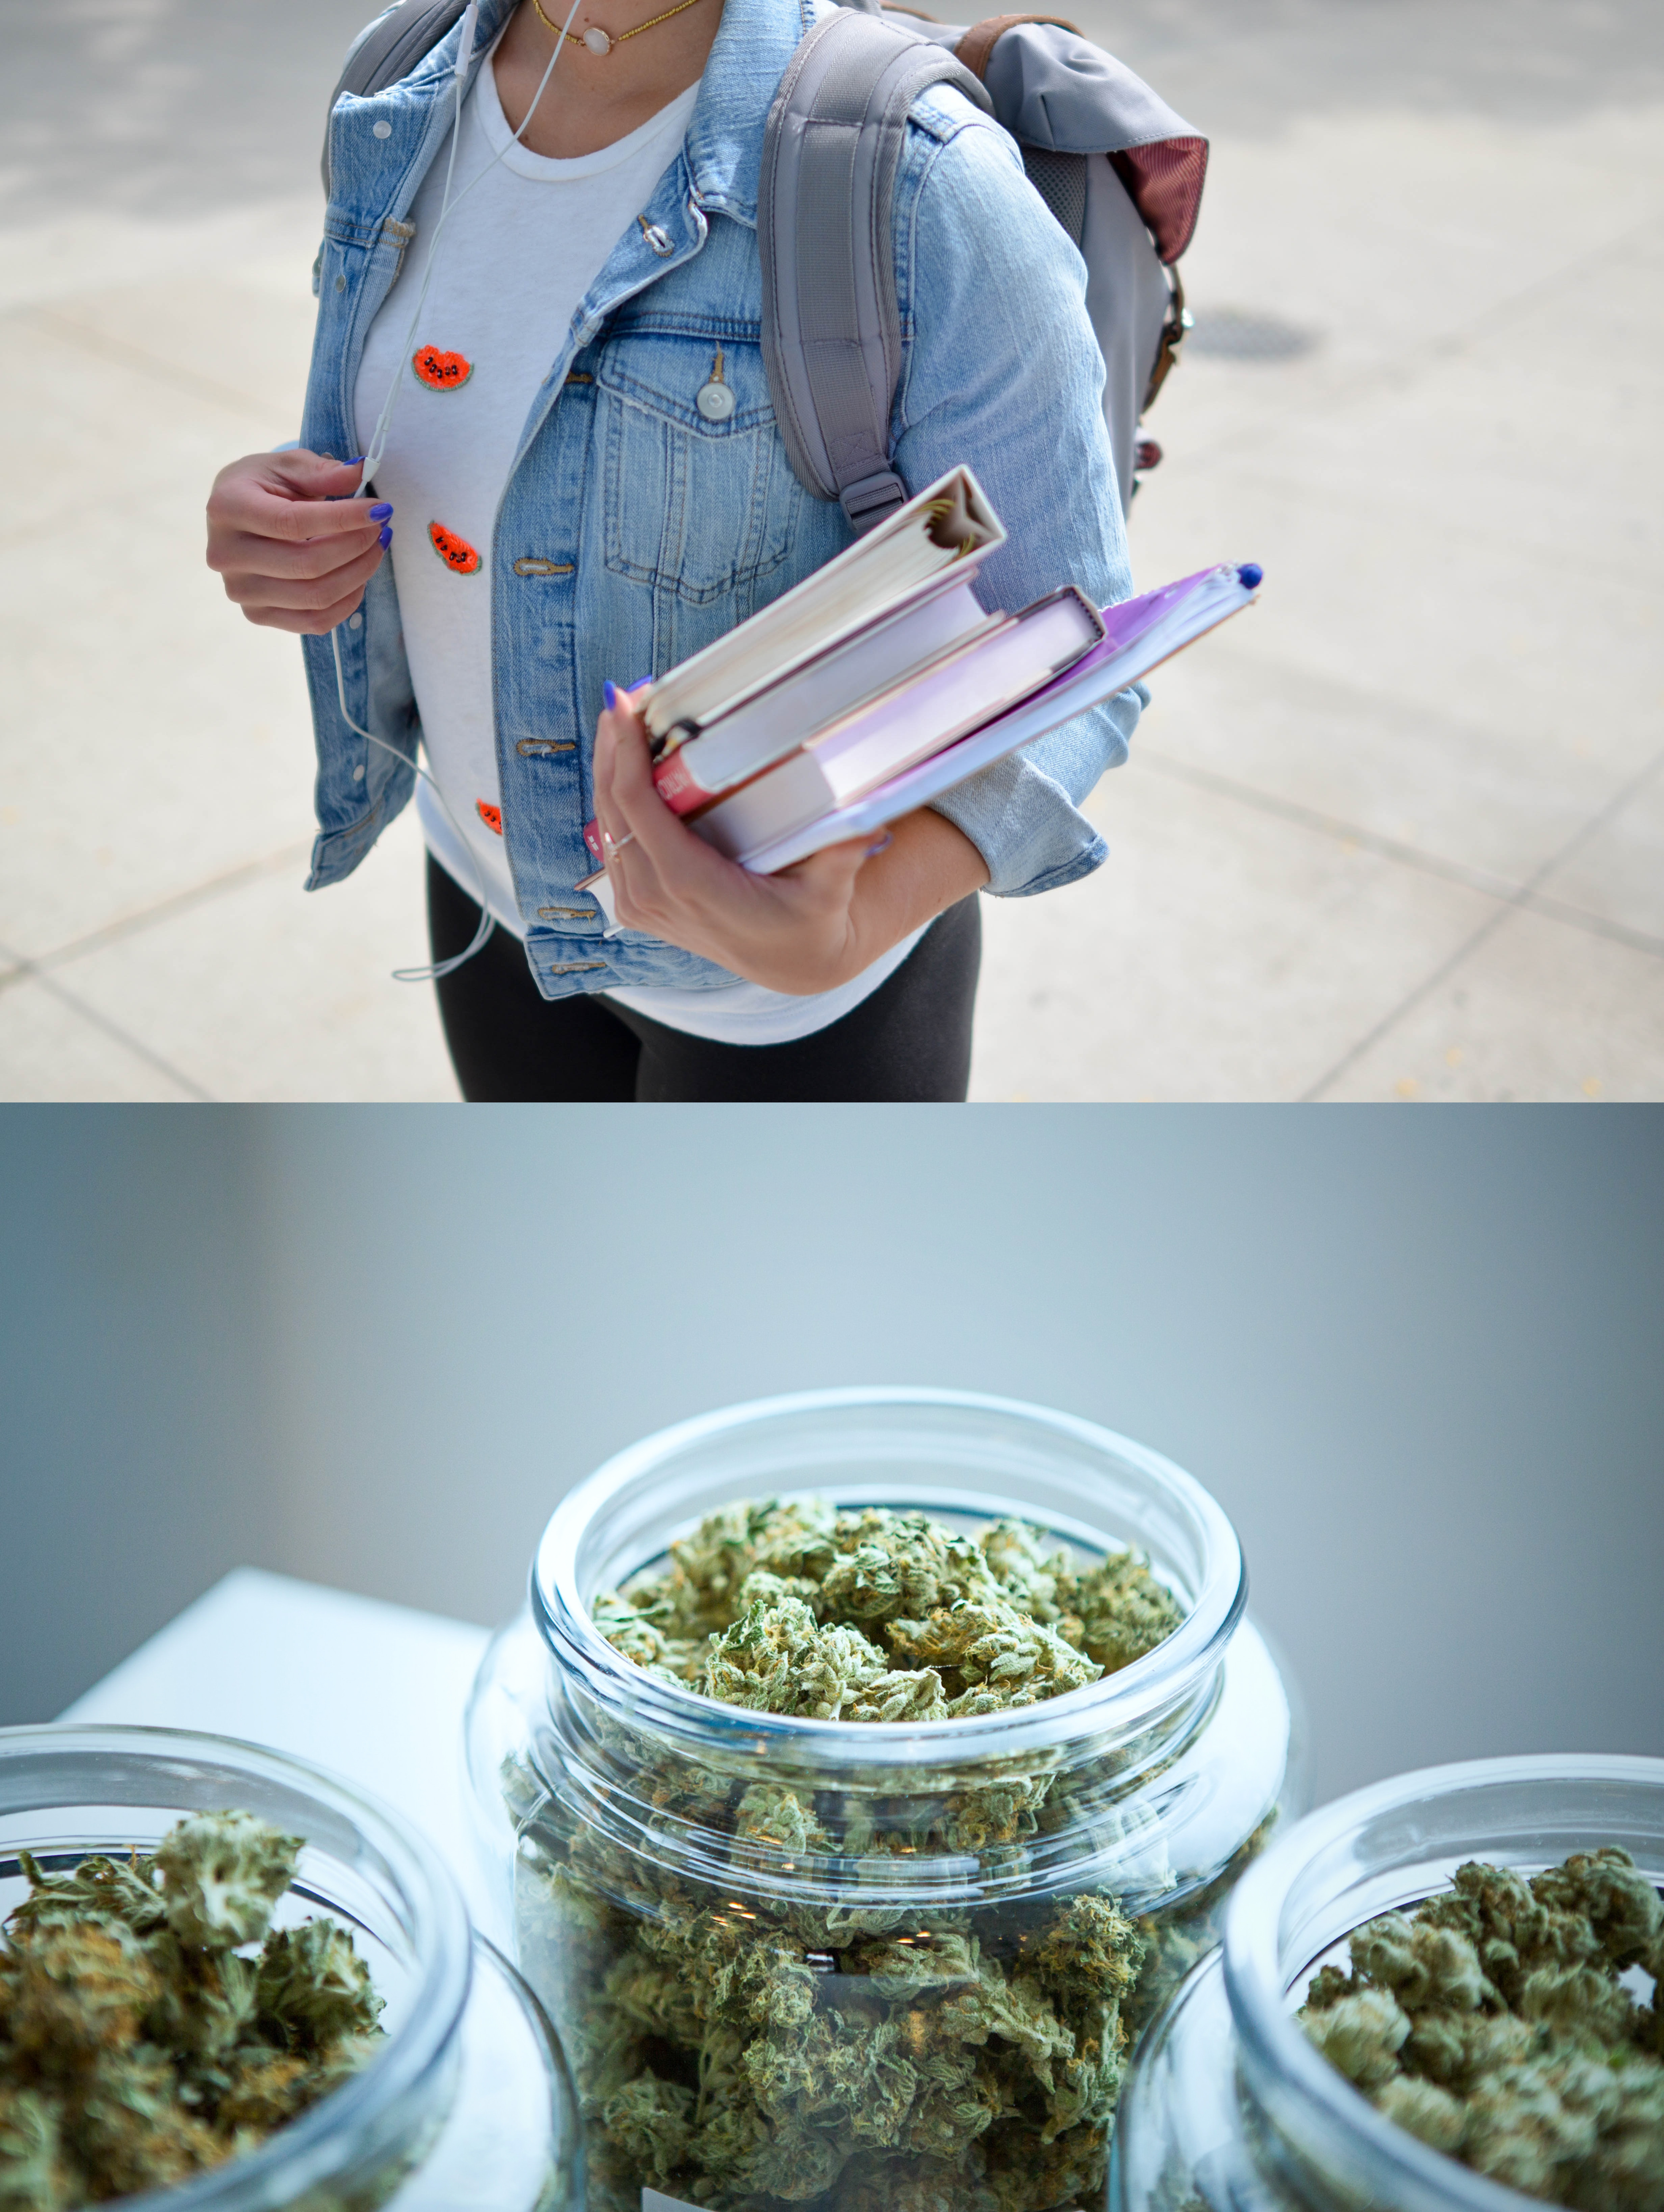 (Top) Student holding books. (Bottom) Jars filled with marijuana flower buds.